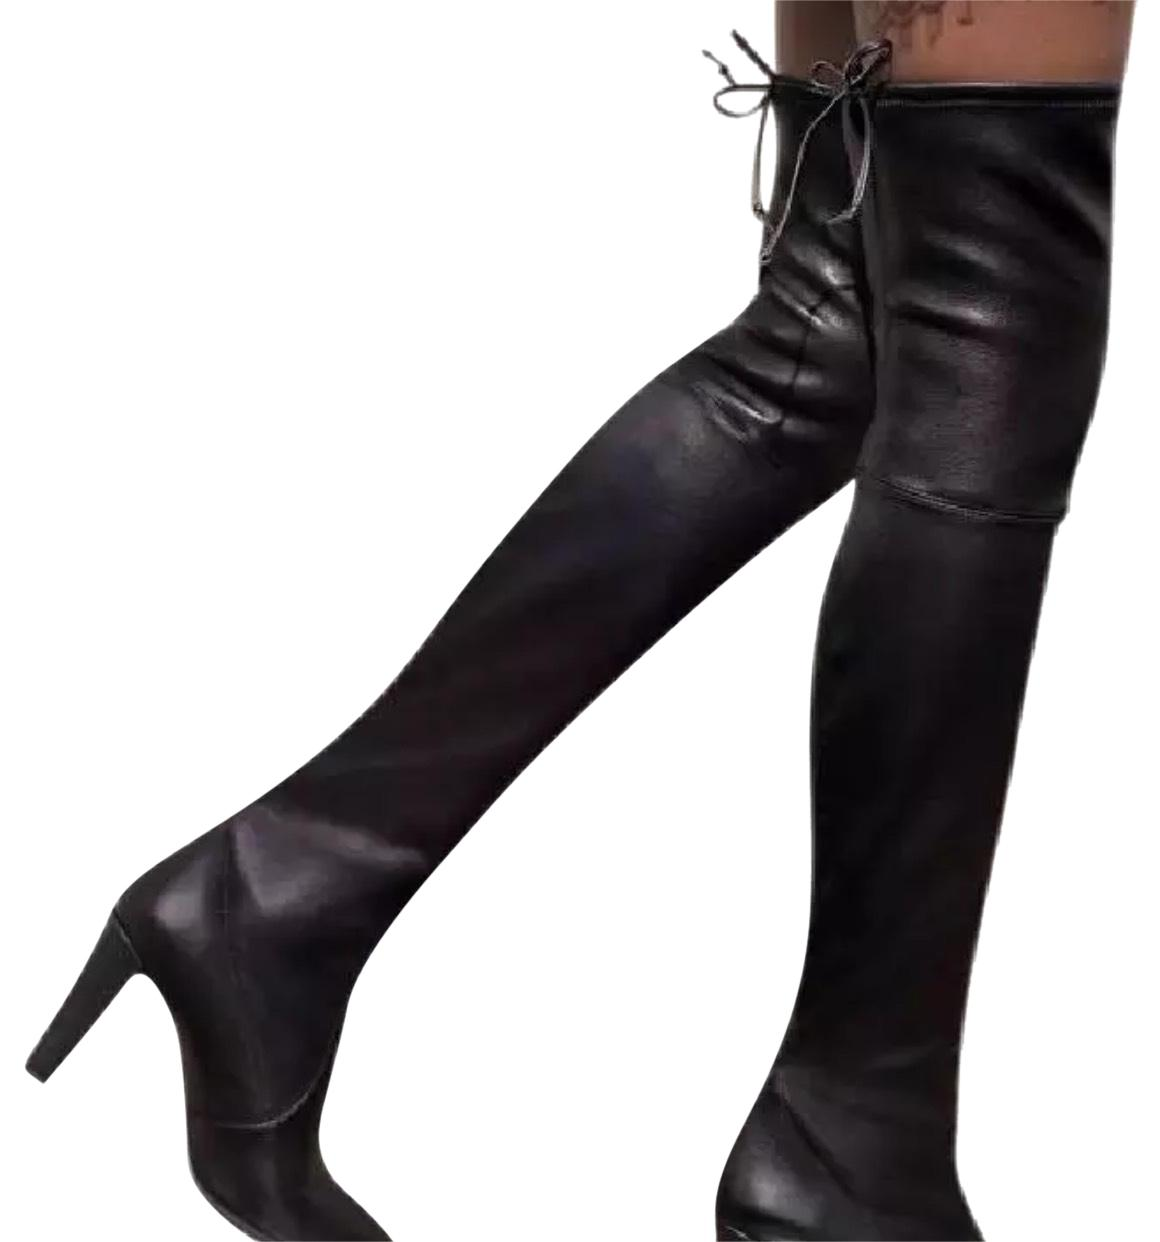 Stuart Weitzman Black Highland Over-the -knee Leather Boots/Booties Size US 7 Regular (M, B)